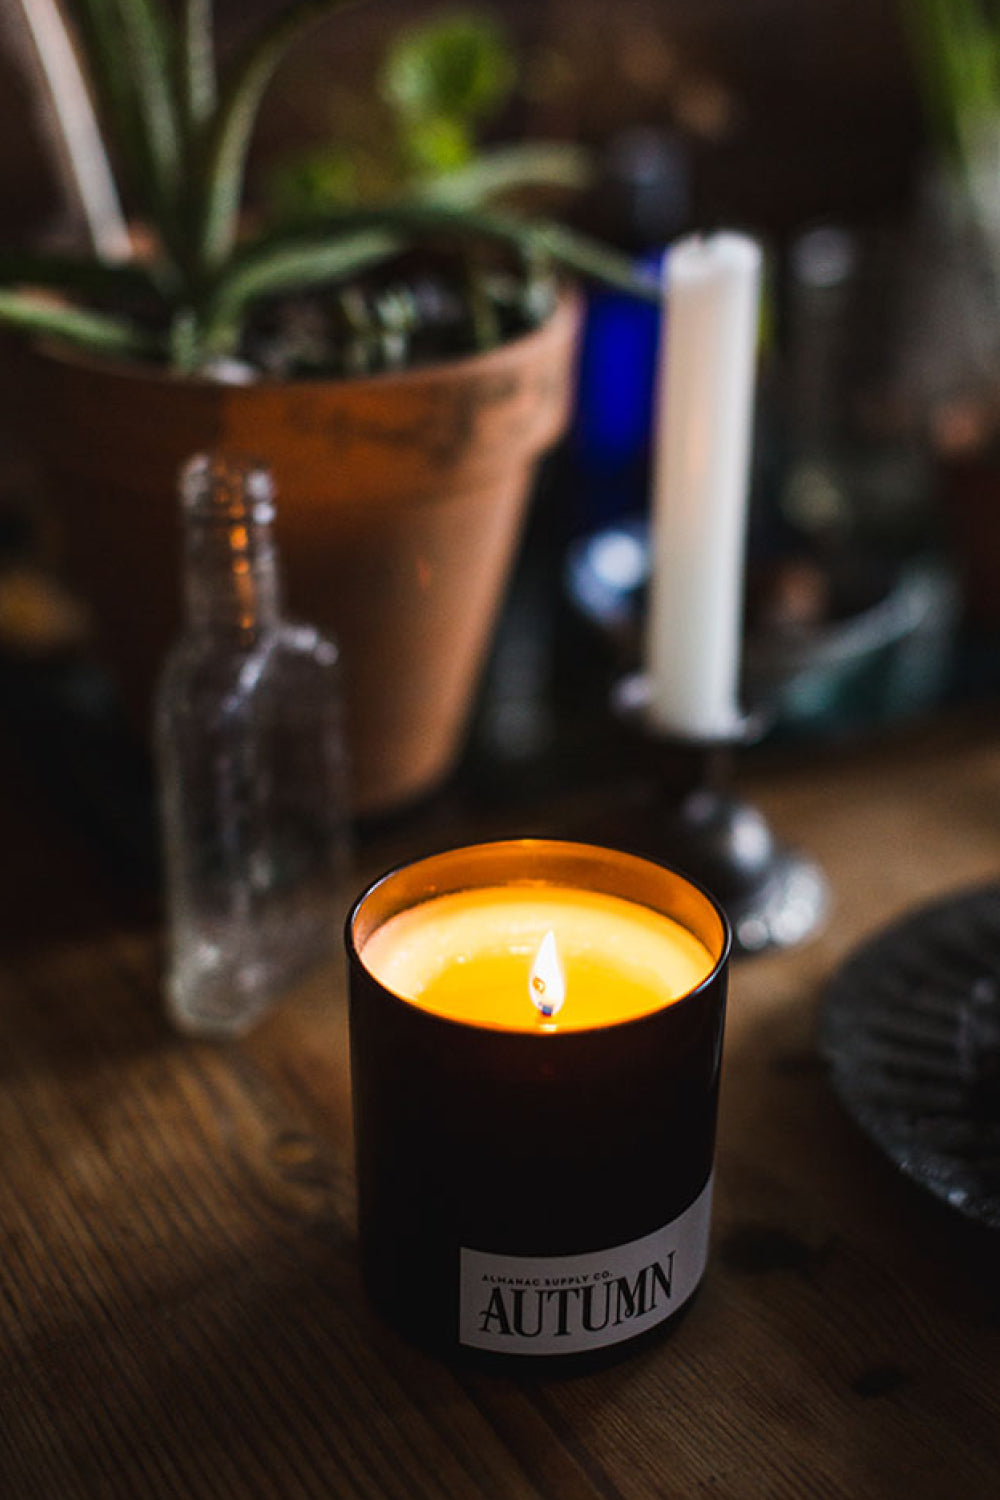 Lit Autumn Candle on wooden countertop